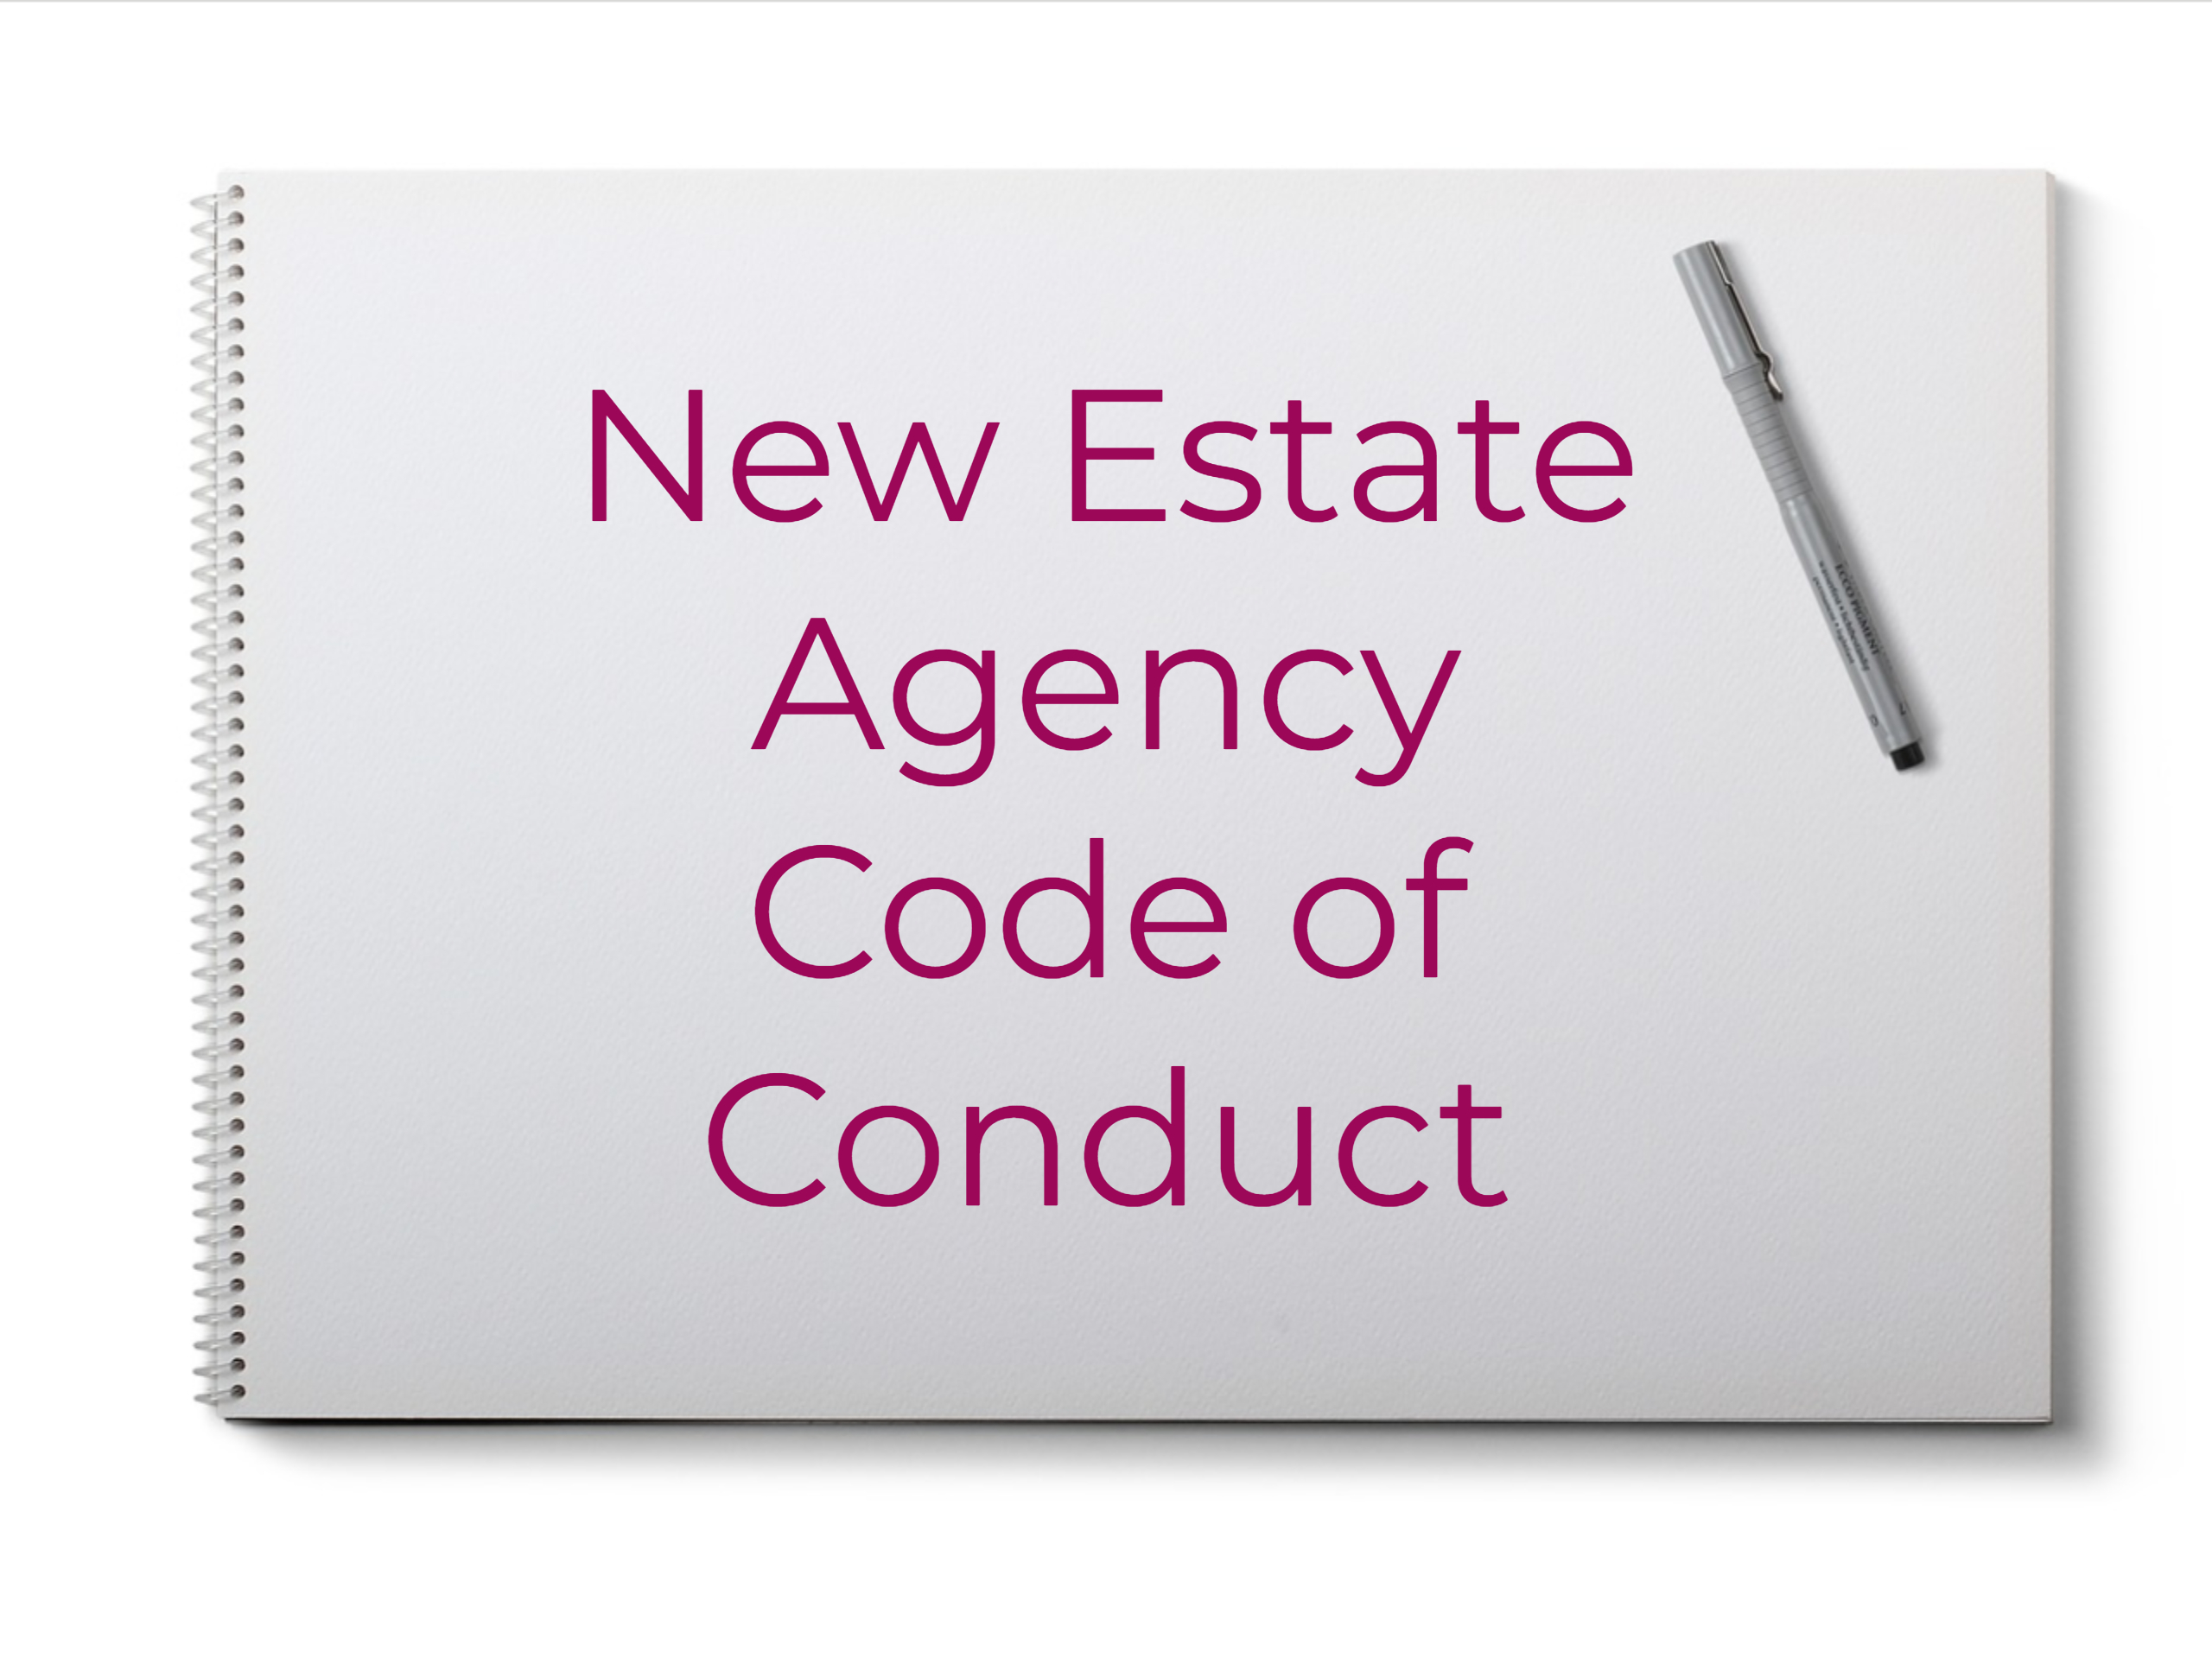 New Estate Agent Code of Conduct released Image